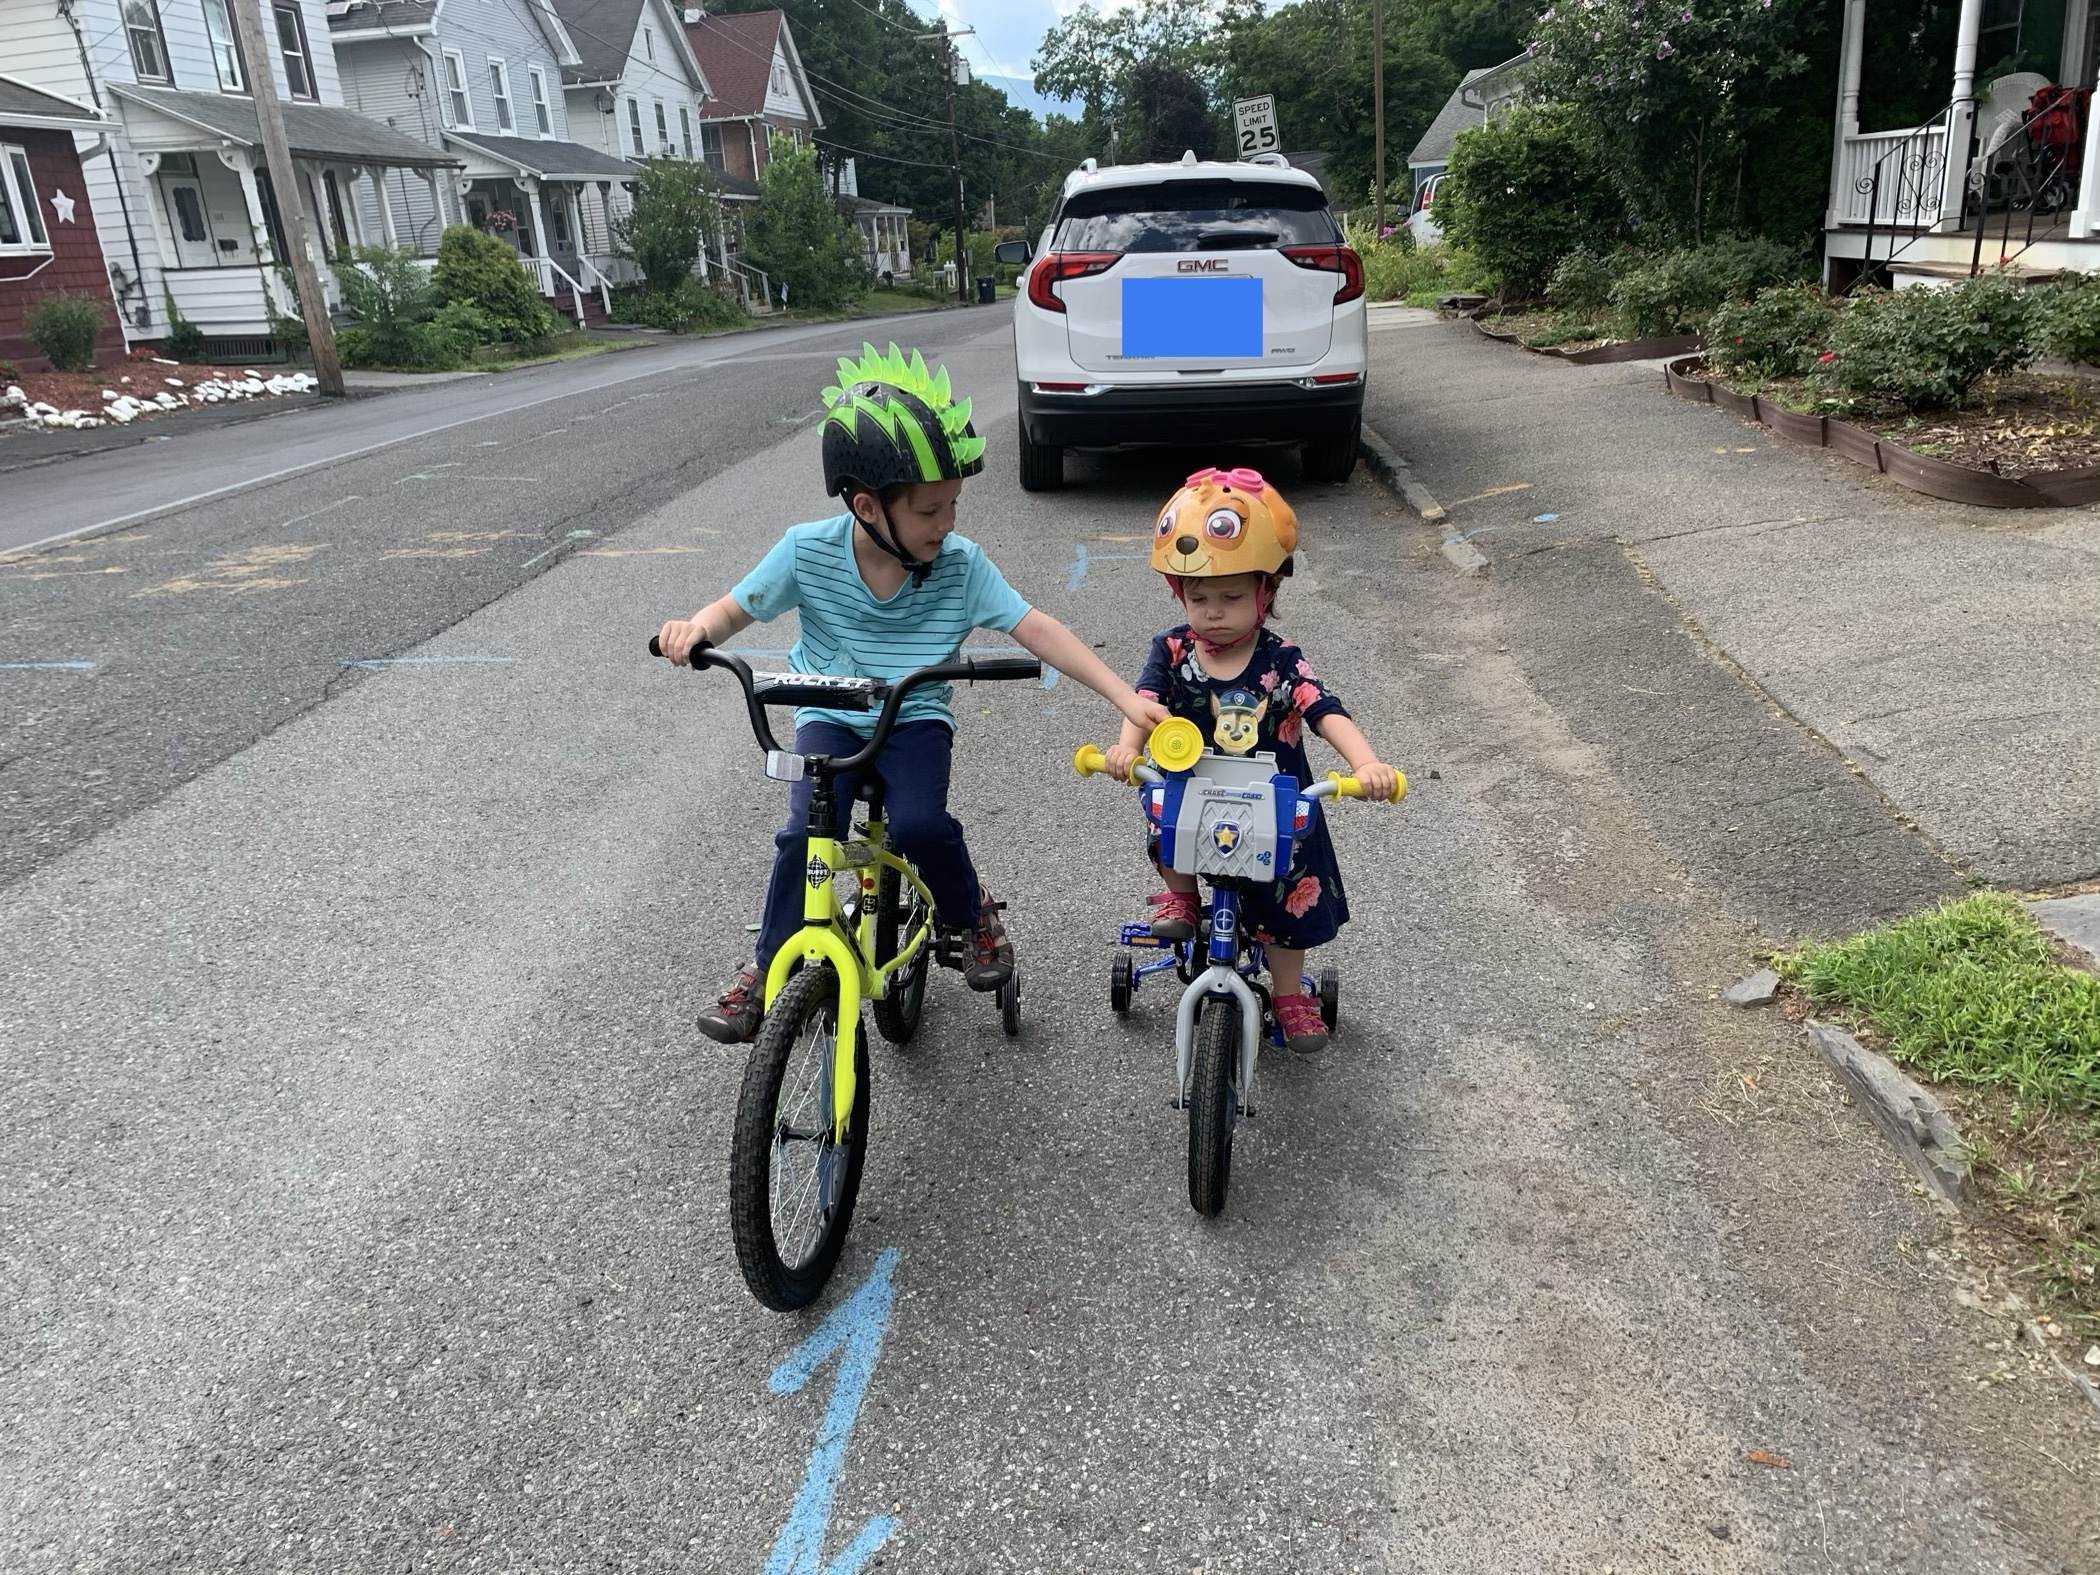 Swale and Z on their new bikes